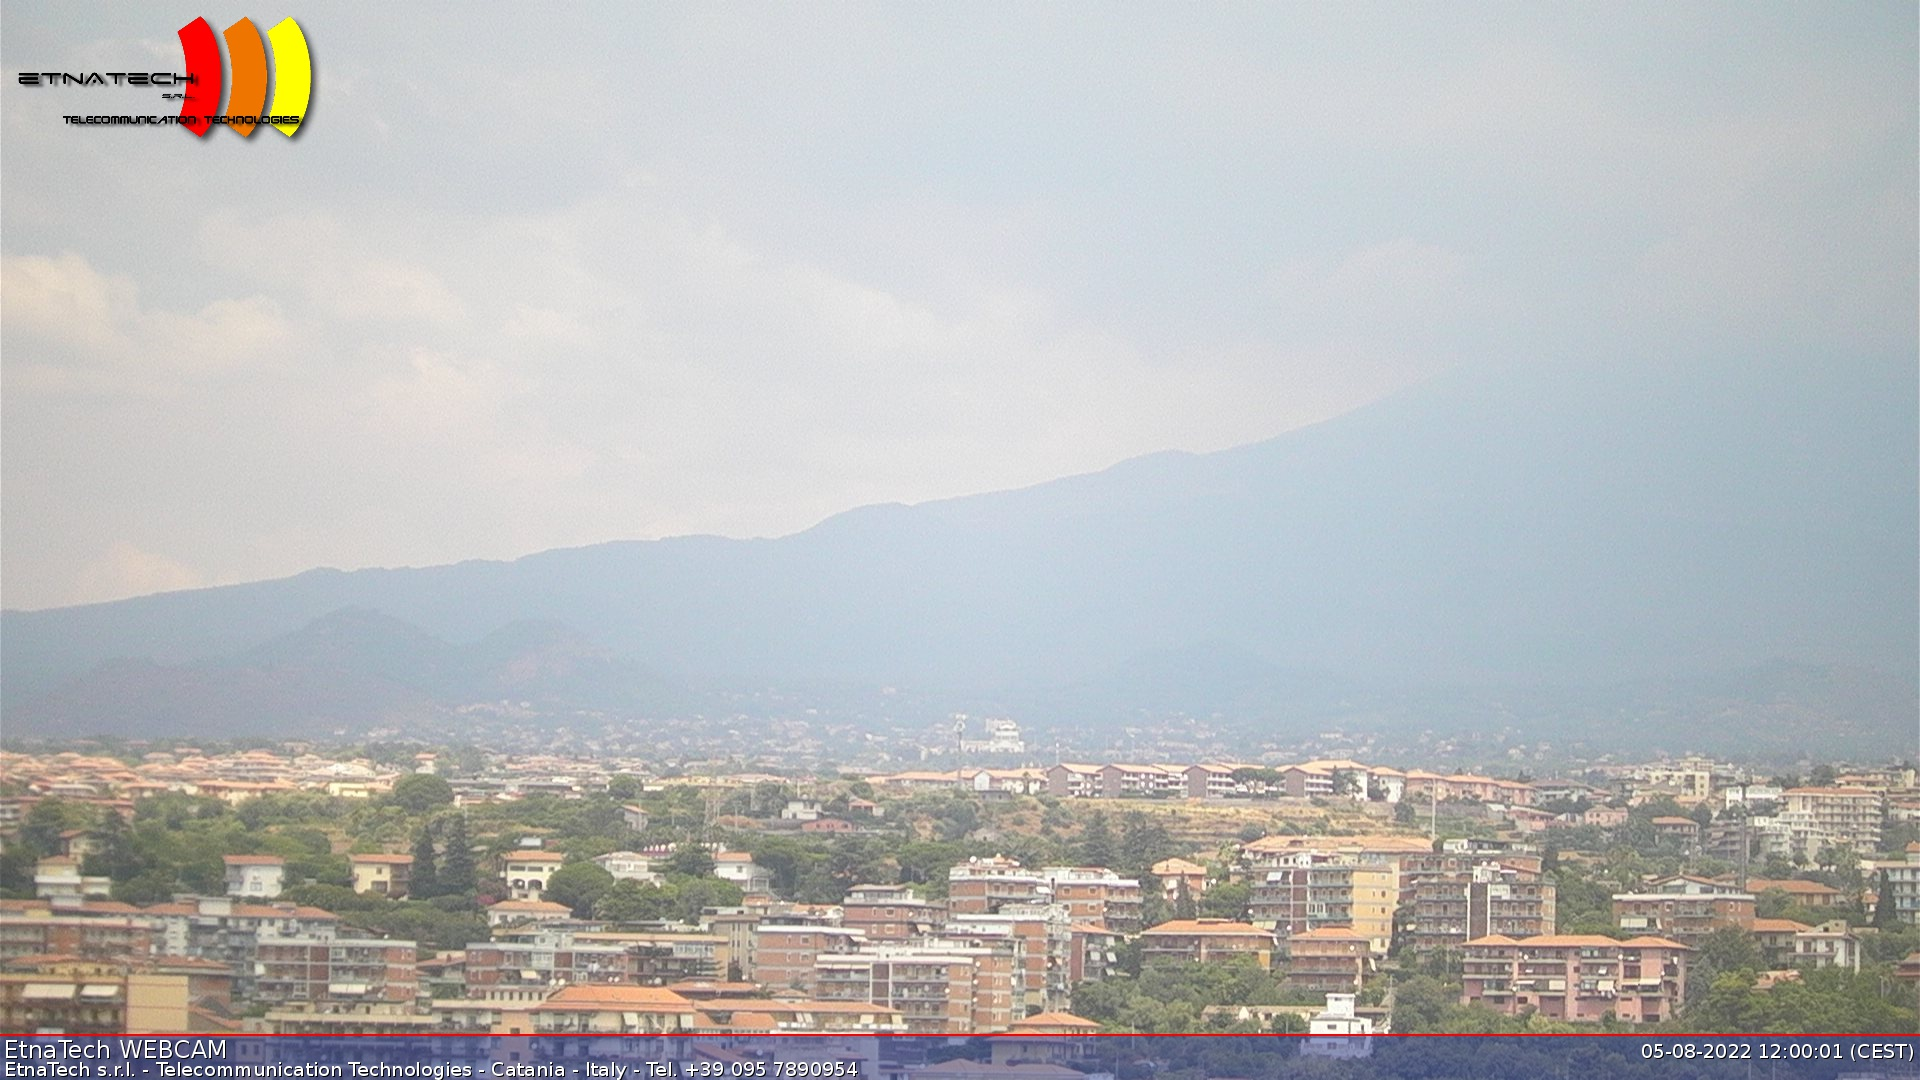 Webcam Etna sud